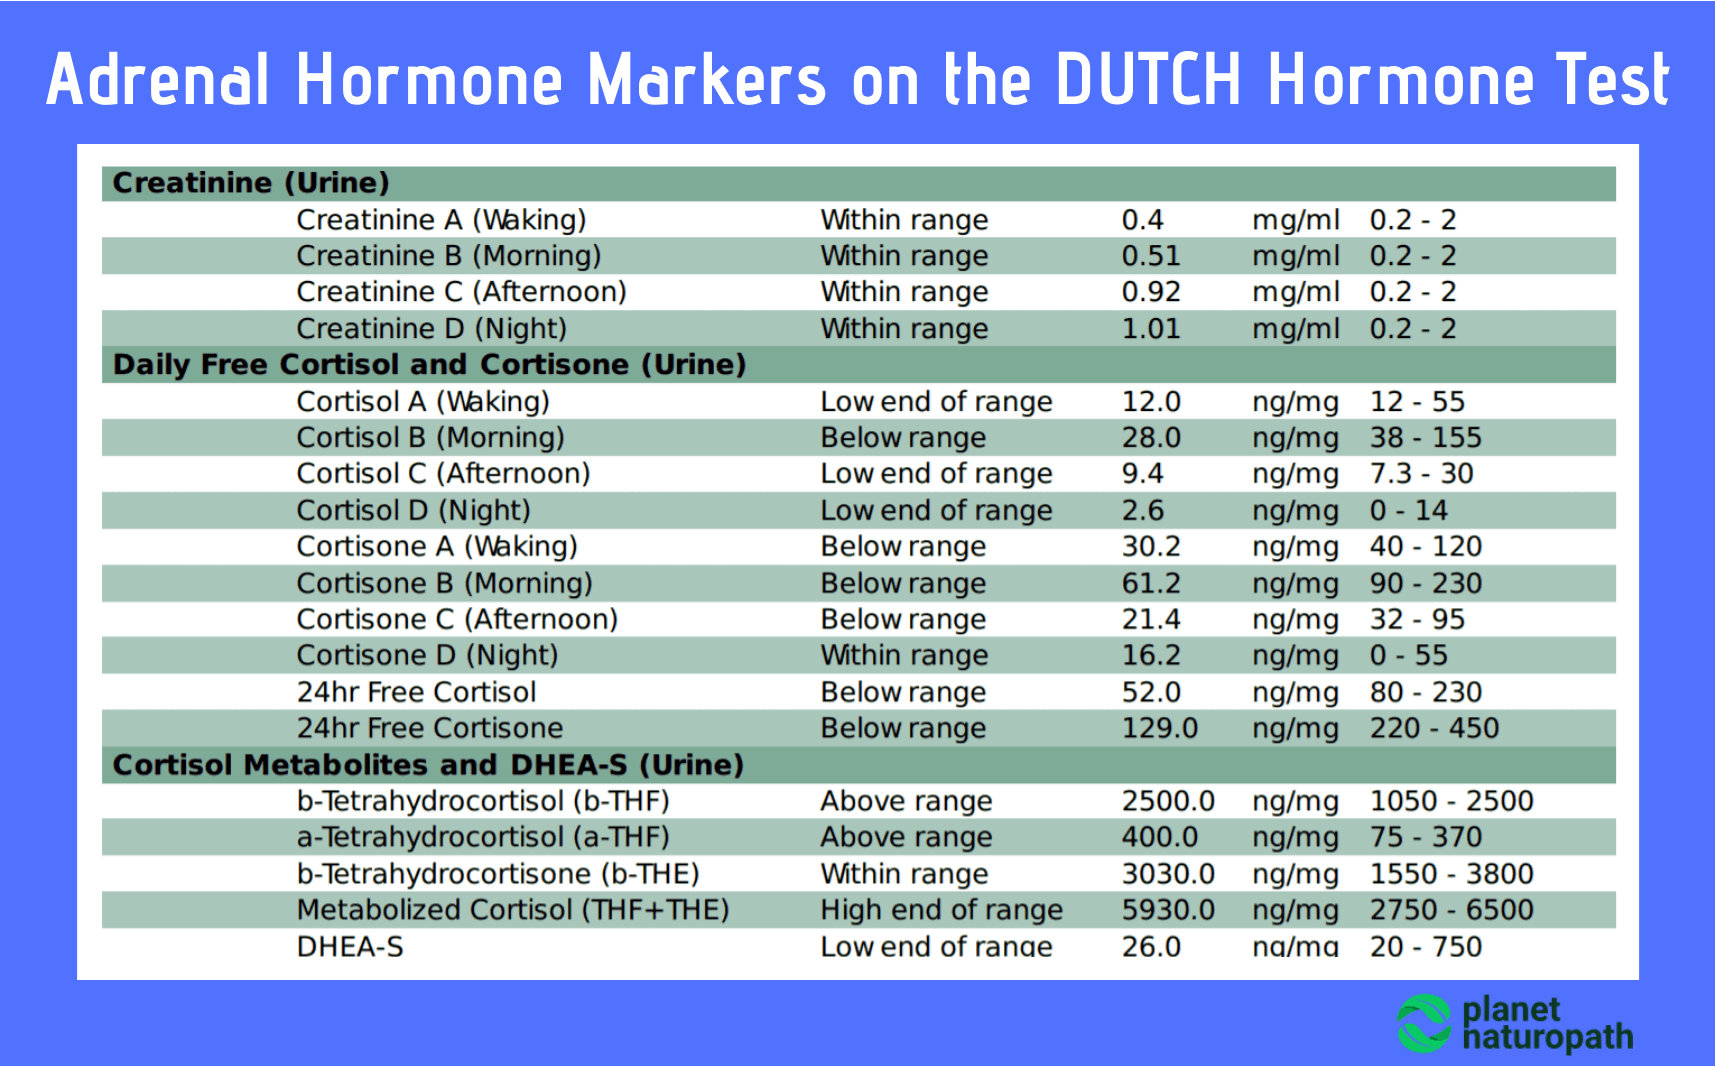 Adrenal-Hormone-Markers-on-the-DUTCH-Hormone